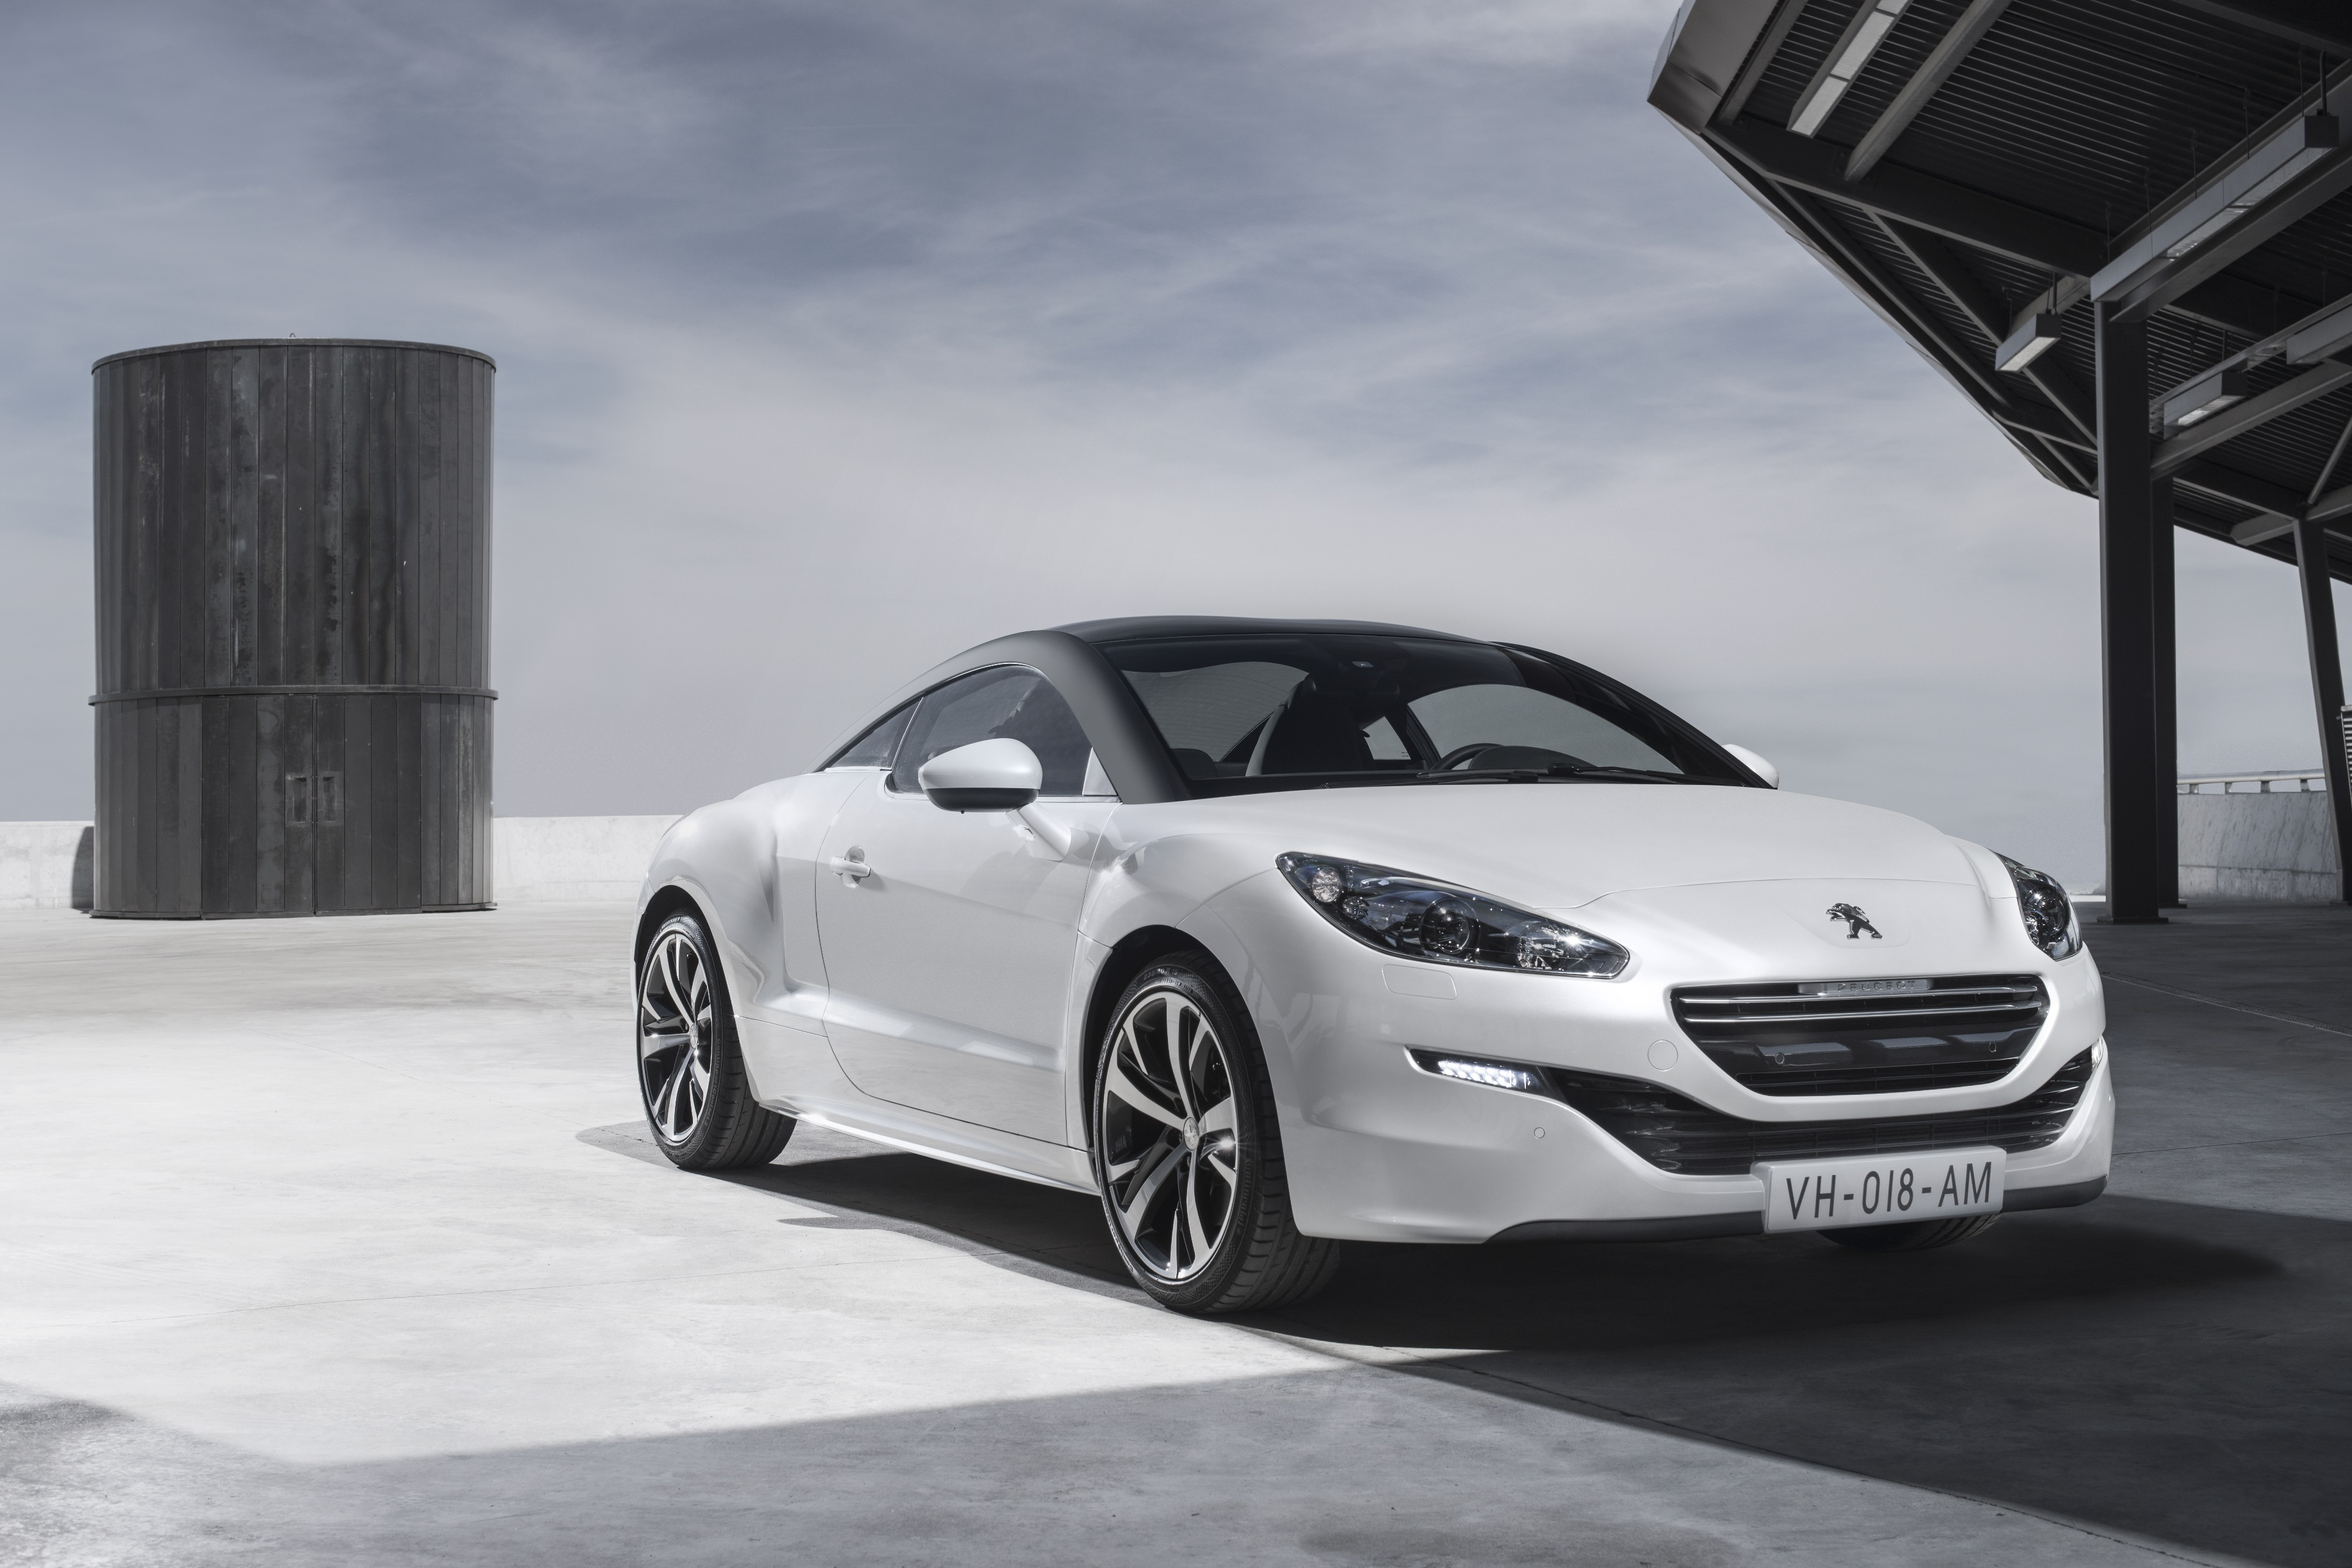 peugeot rcz la fin d 39 une belle histoire forum. Black Bedroom Furniture Sets. Home Design Ideas